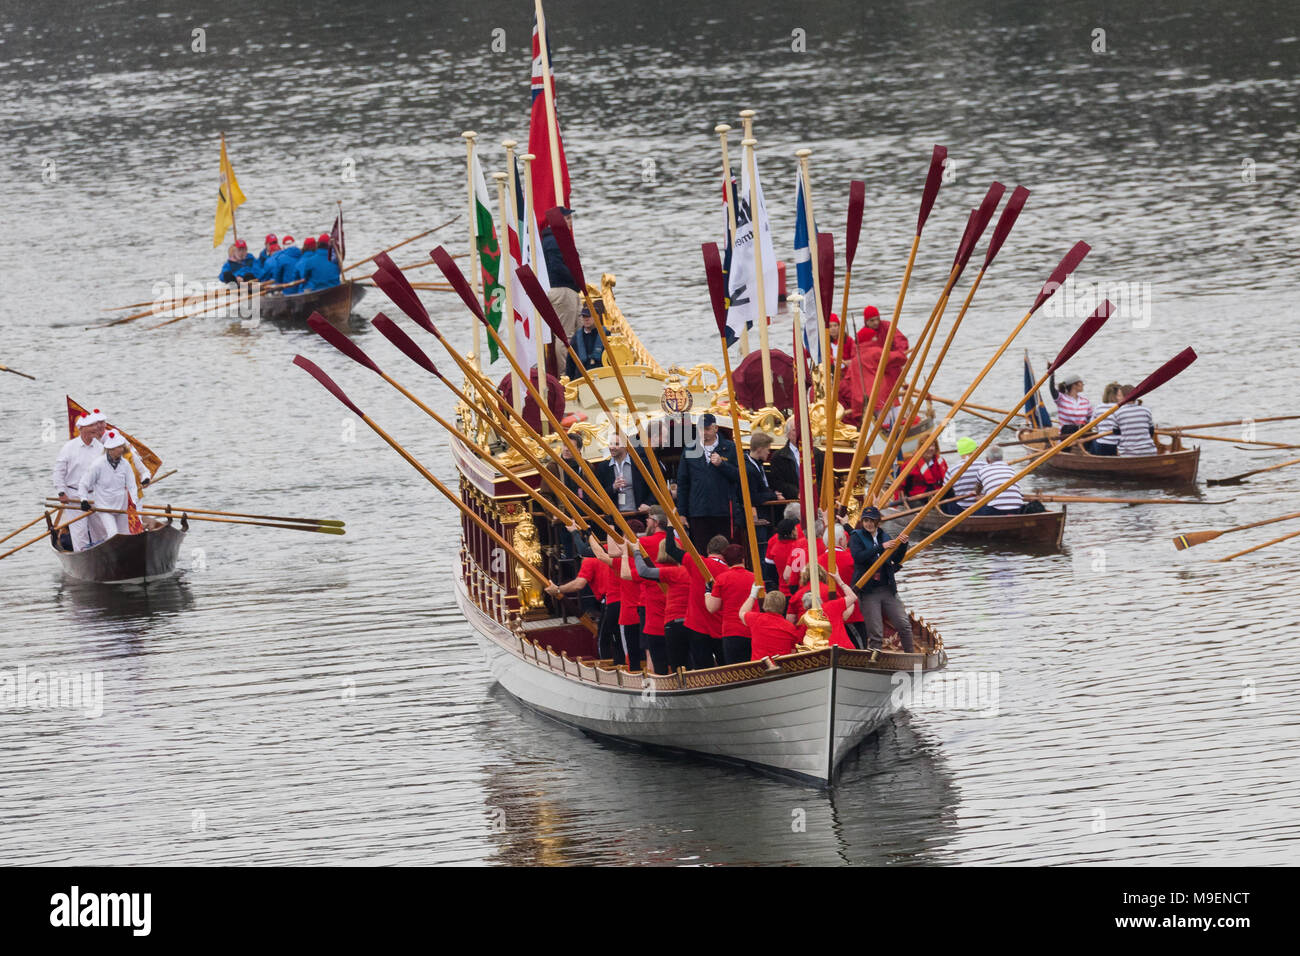 London, UK. 24th March 2018. Gloriana, the Queen's row barge, escorted by a flotilla of traditional rowing craft from around Europe leads The Boat Race Festival of Rowing on the River Thames near Mortlake. The flotilla of boats row the Boat Race course before the the main races between Oxford & Cambridge Universities. Credit: London Vickie Flores/Alamy Live News - Stock Image